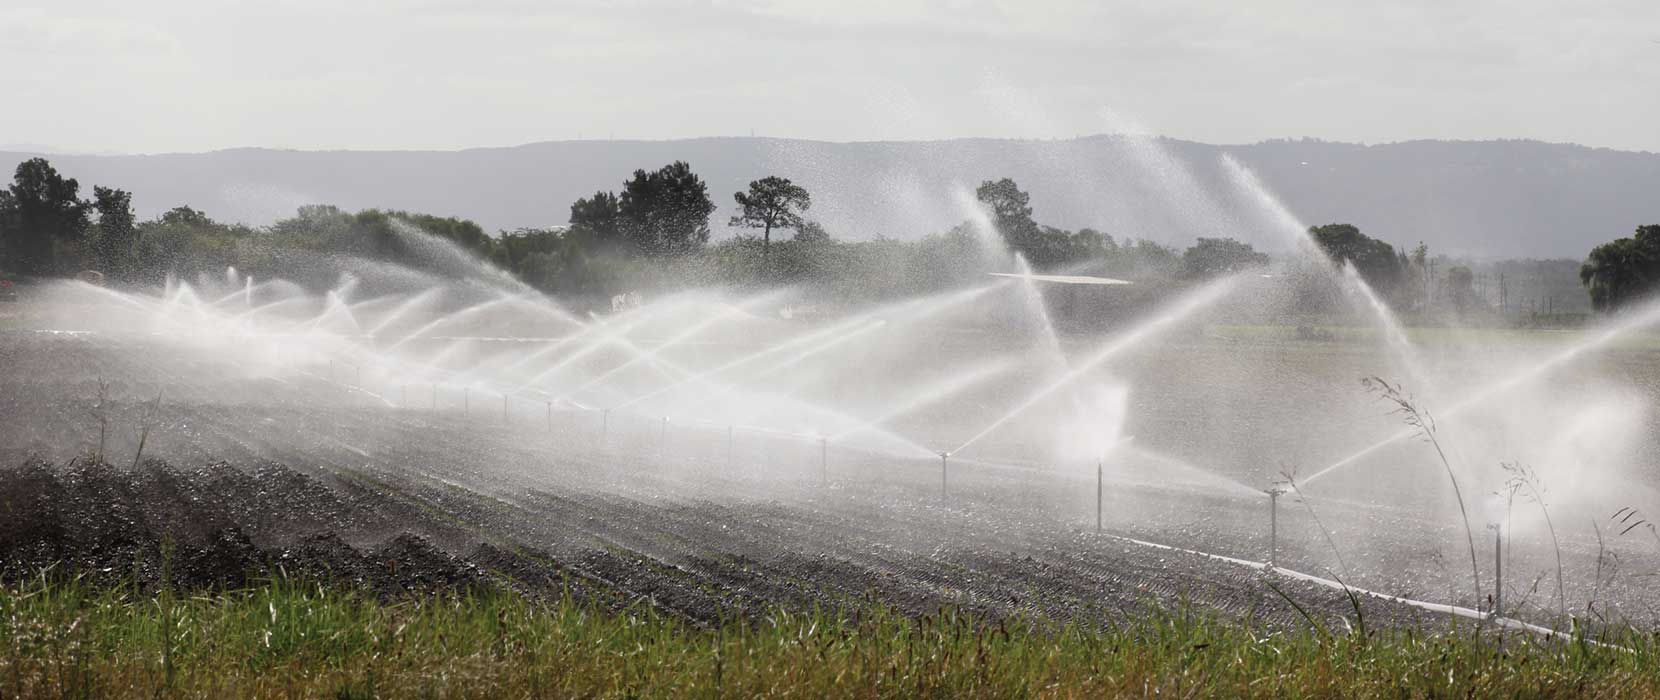 Irrigation pipes spraying water across a pasture.